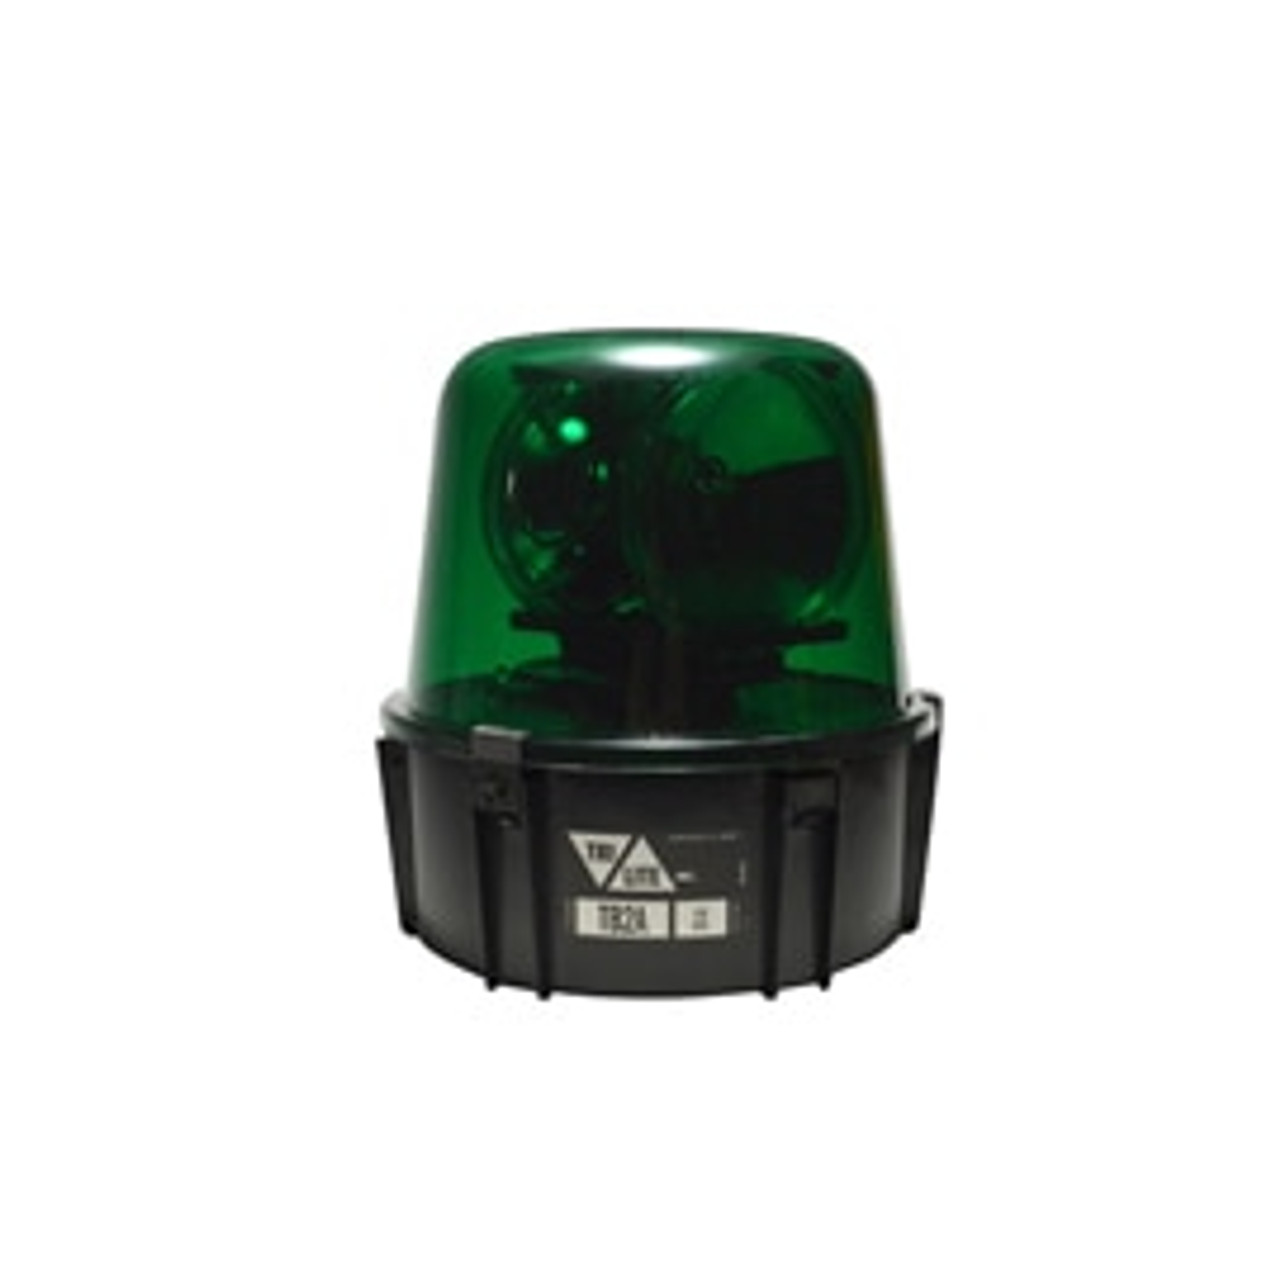 TriLite TB2 Rotating Beacon Light (12v)